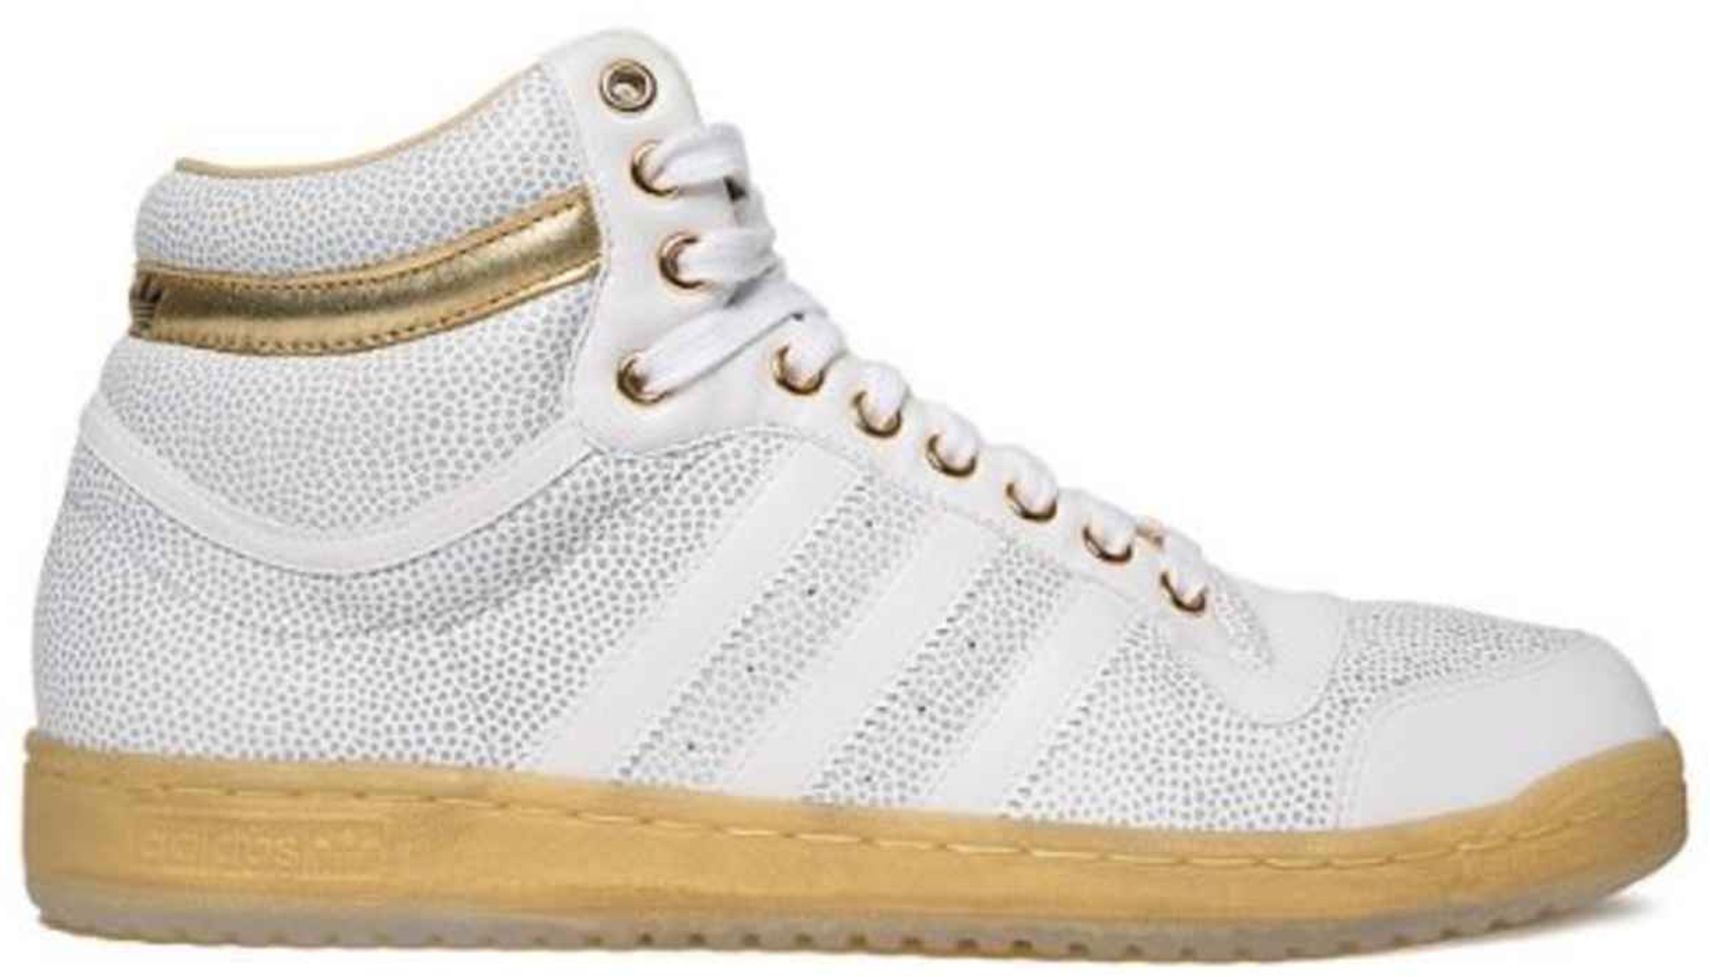 adidas Top Ten Undefeated Estavan Oriol 1979